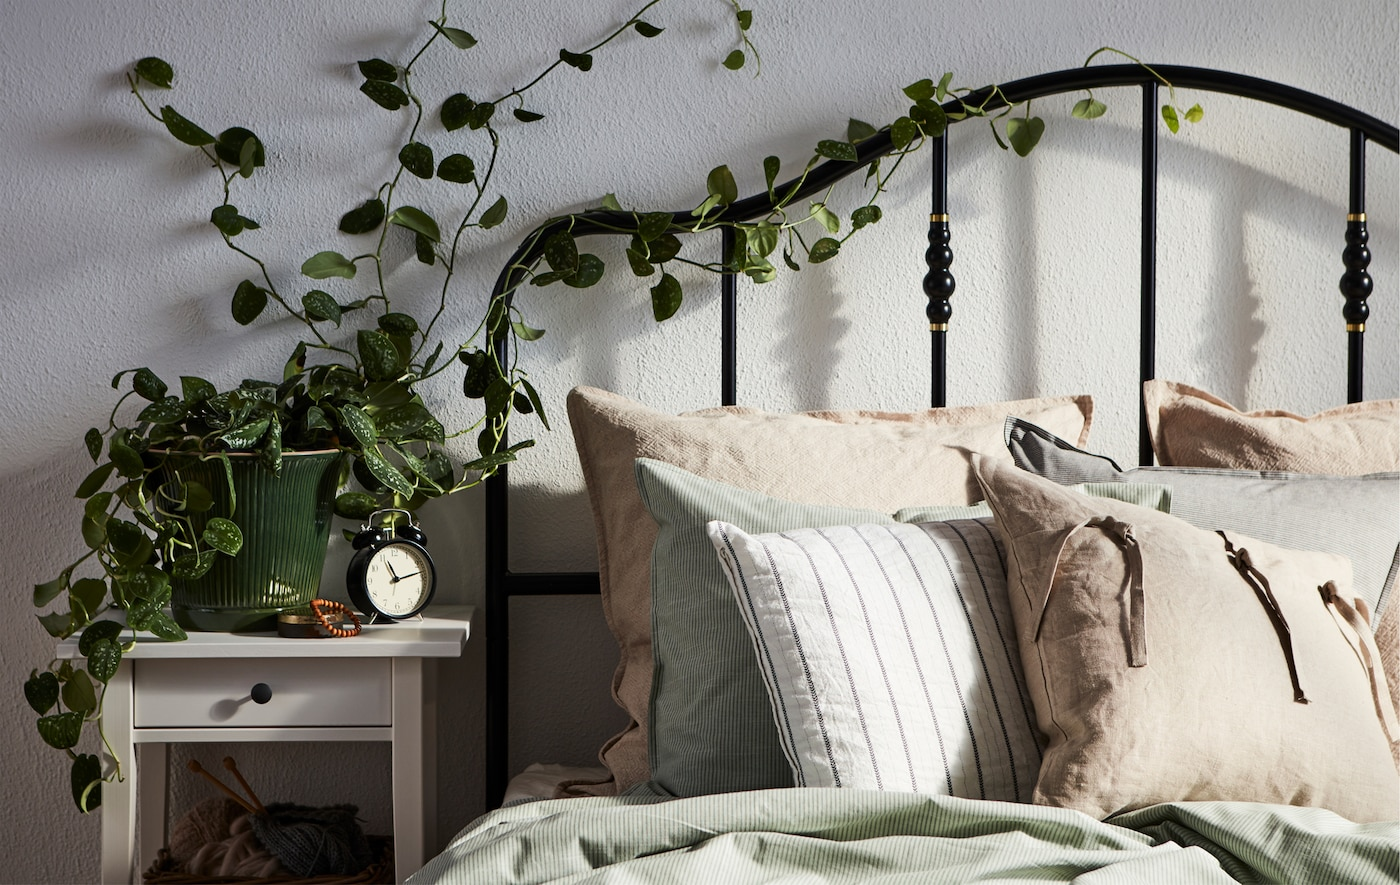 A sunlit bed with a black tubing headboard intertwined with climbing ivy growing from a pot placed on the bedside table.